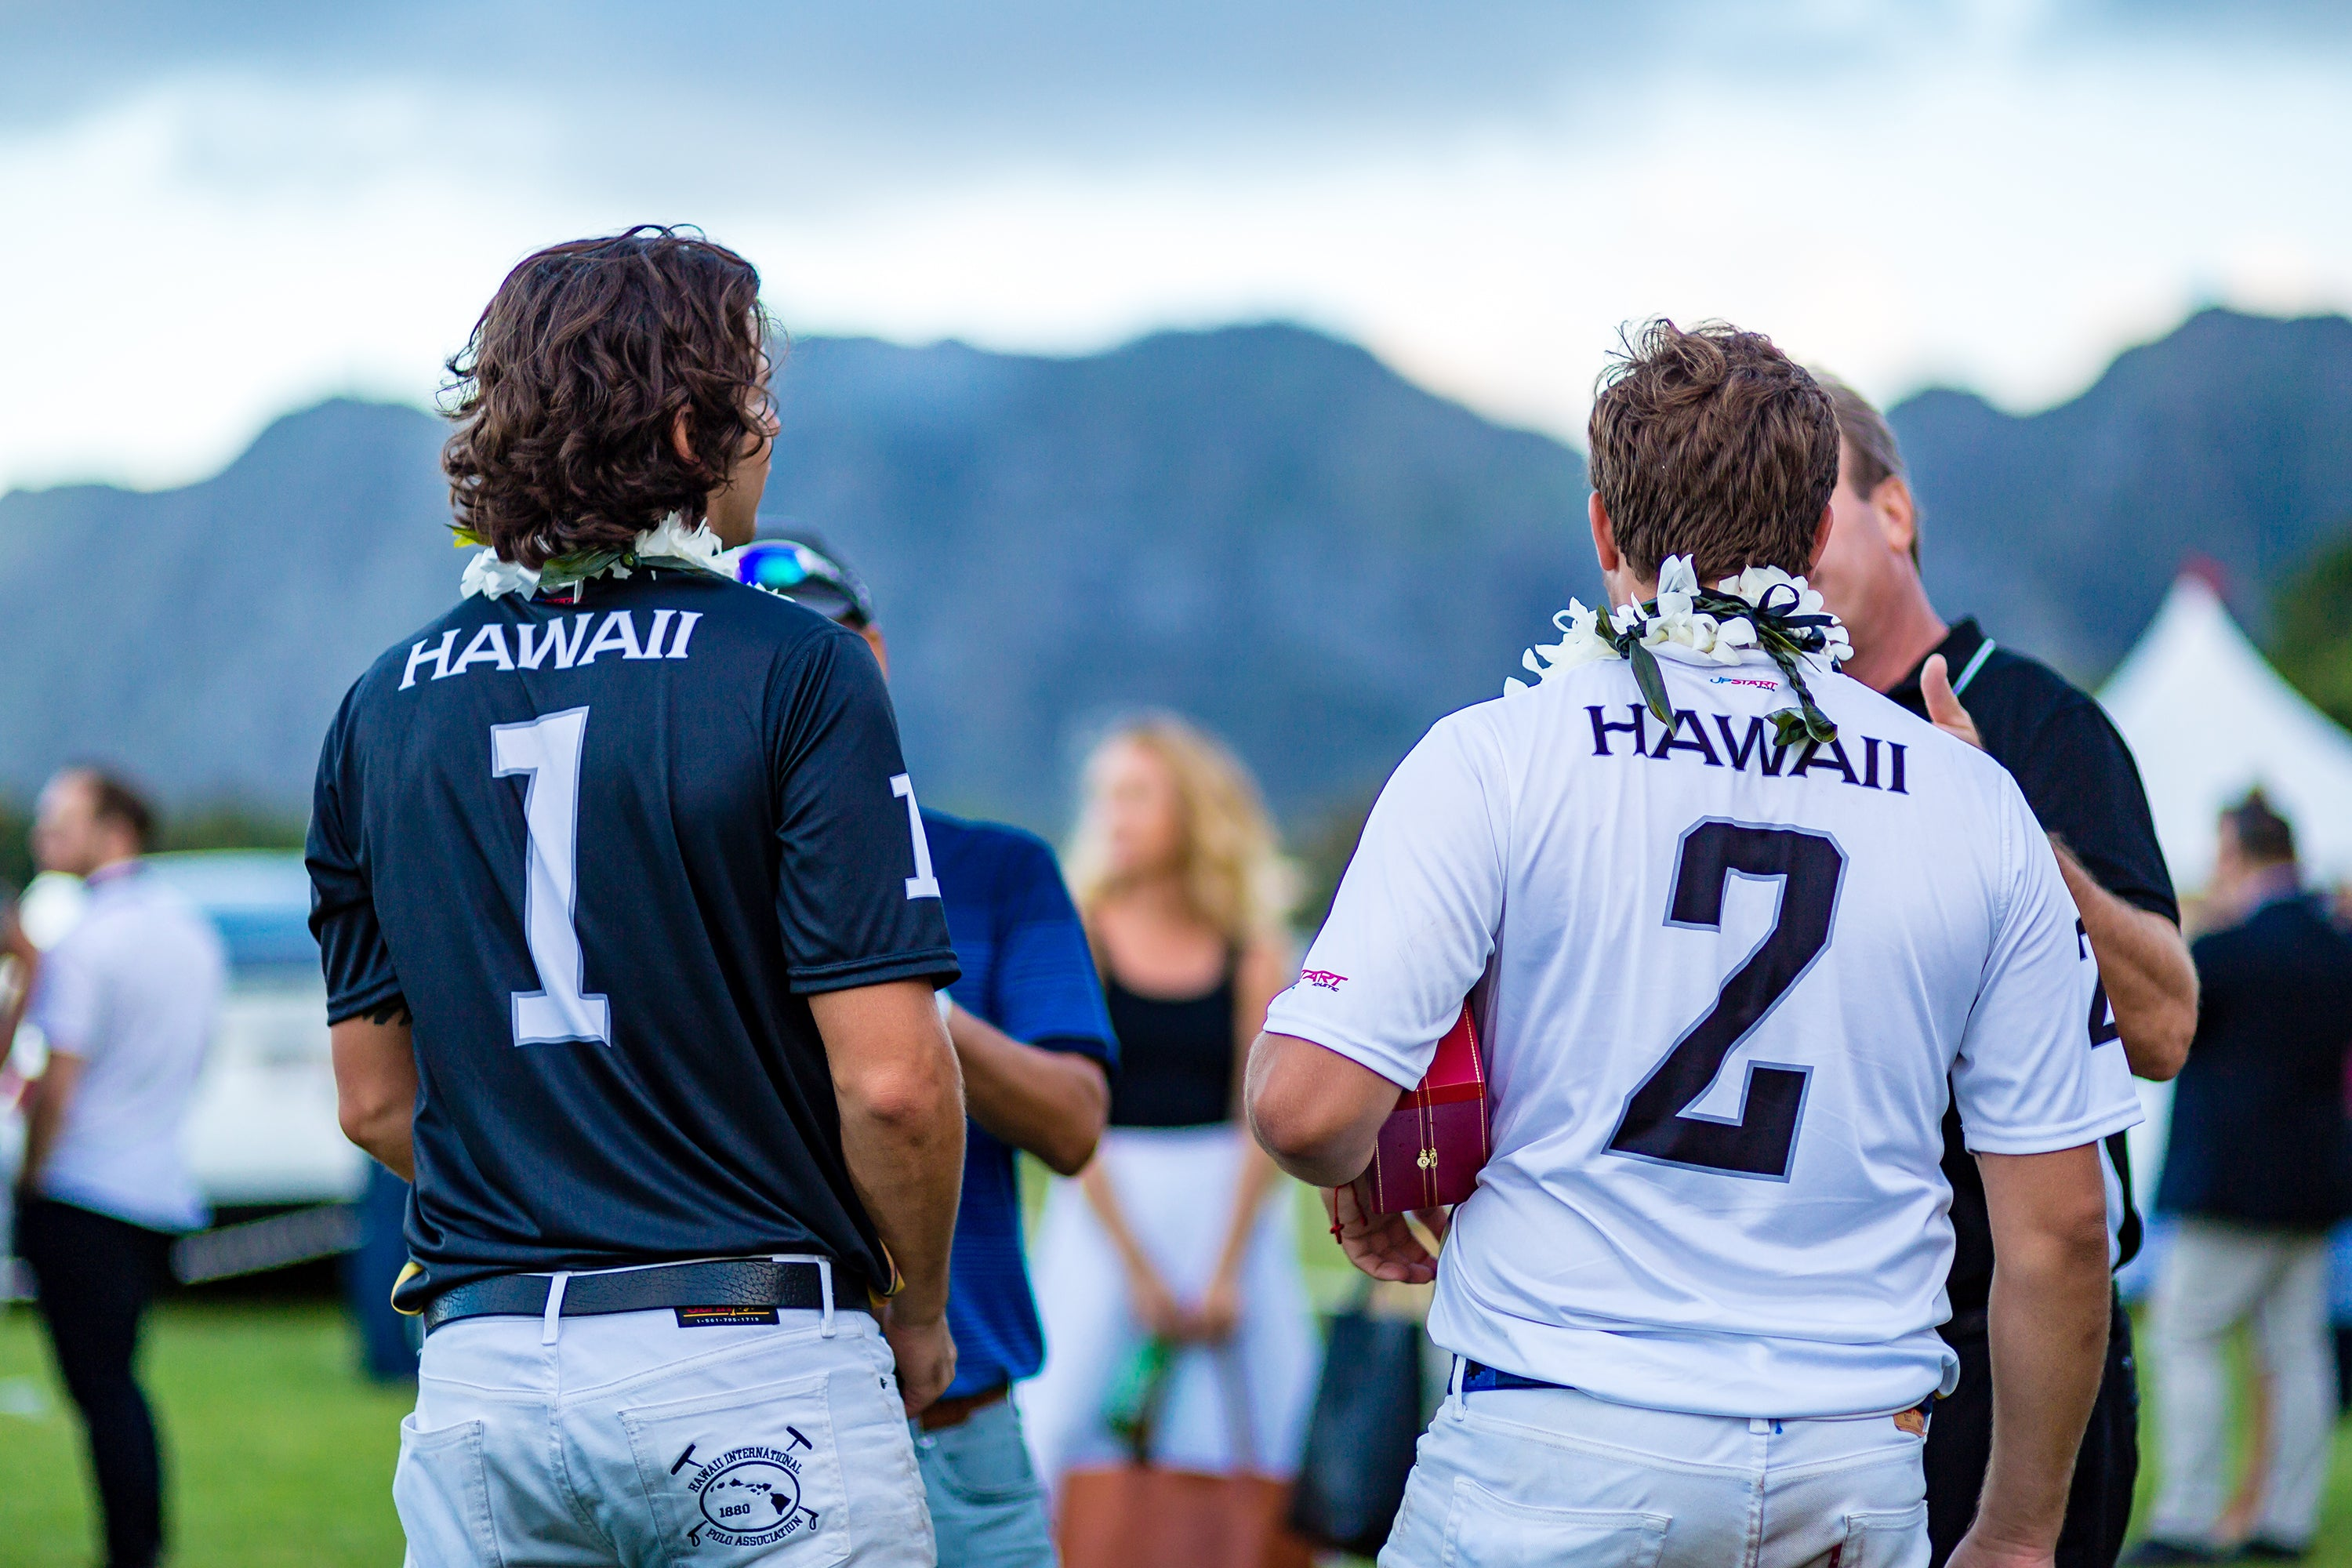 Nano Gracida and  Santi Torres in Hawaii Polo Life Team Jersey's at Hawaii International Polo Association Invitational in Honolulu